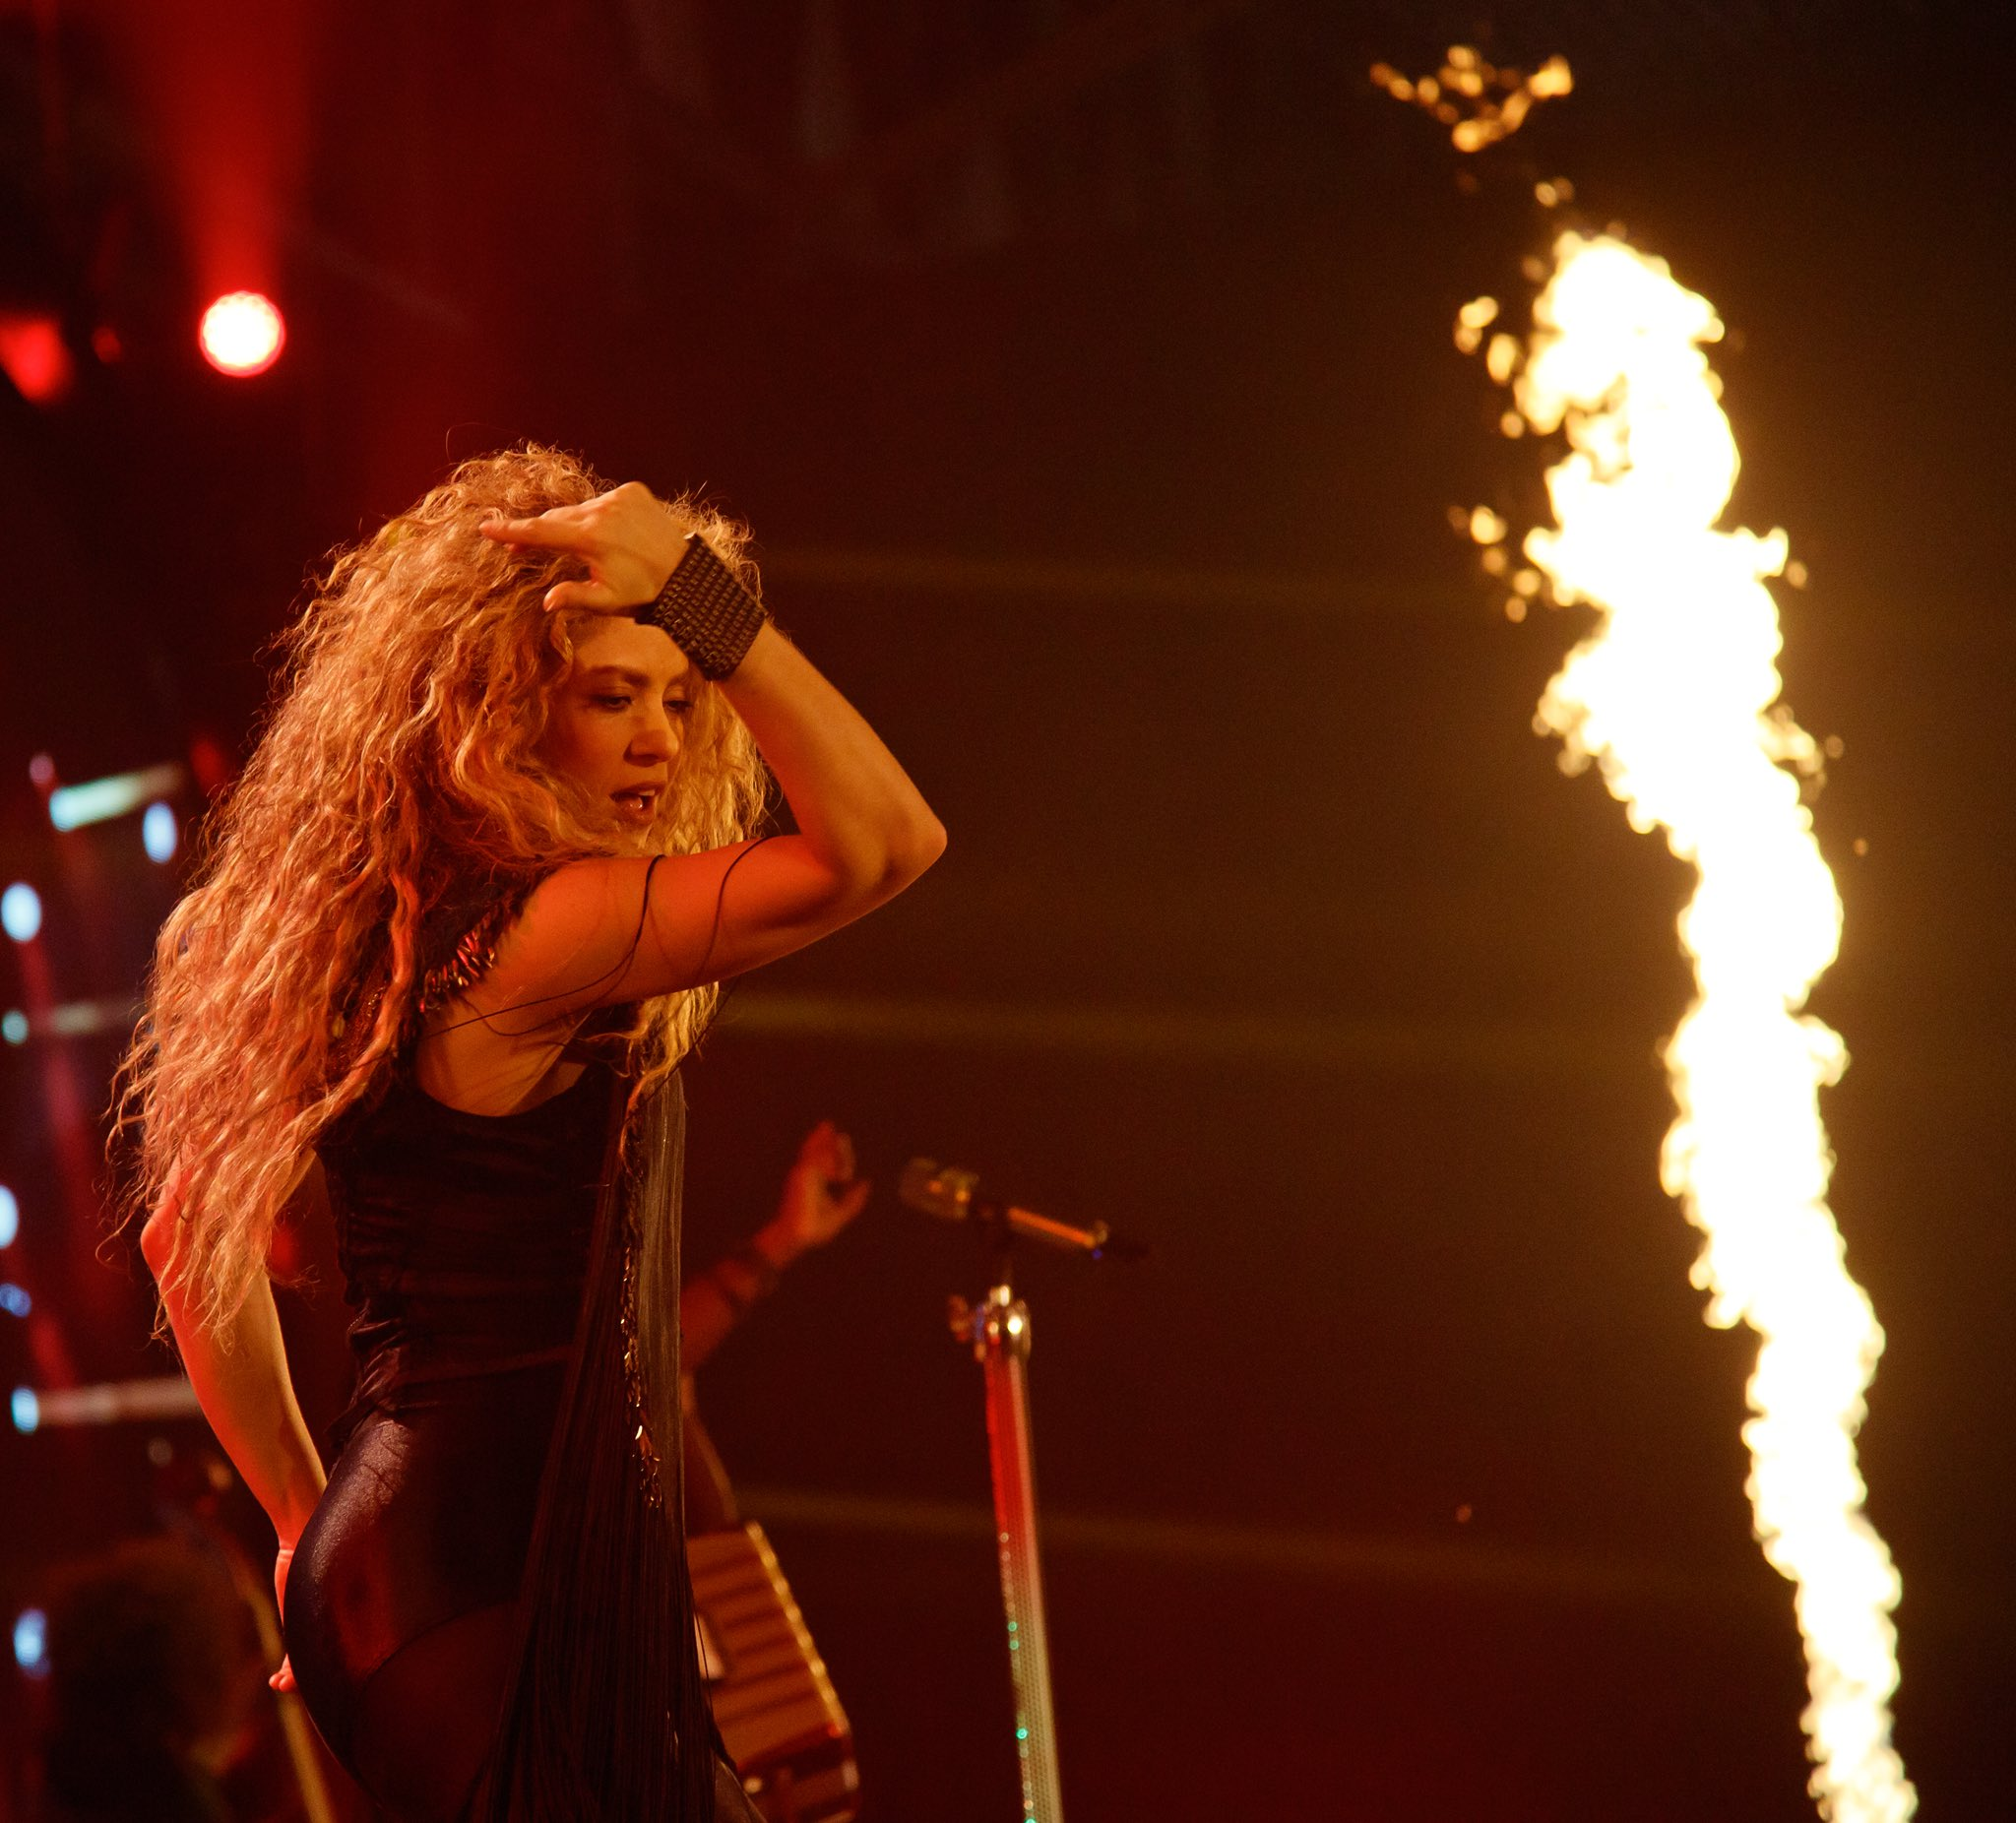 Thank you Amsterdam! You were ��! Shak https://t.co/h633Wkm9mS